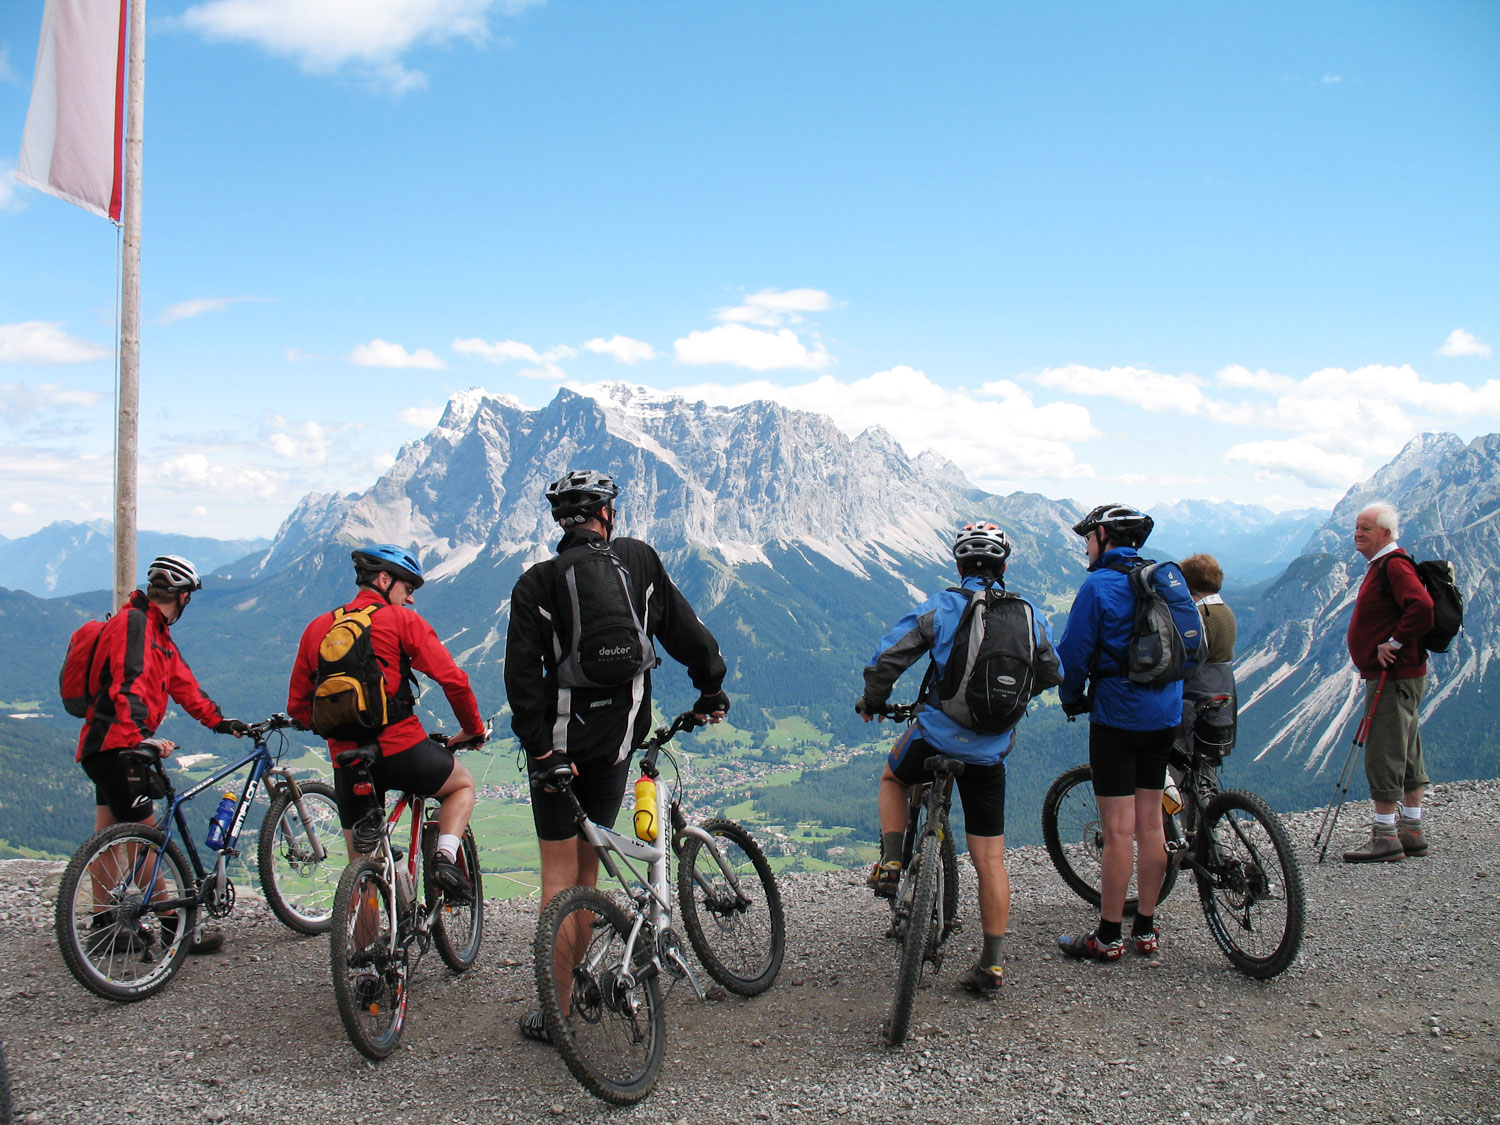 Mountain biking in the Reutte District, Tyrol, Austria